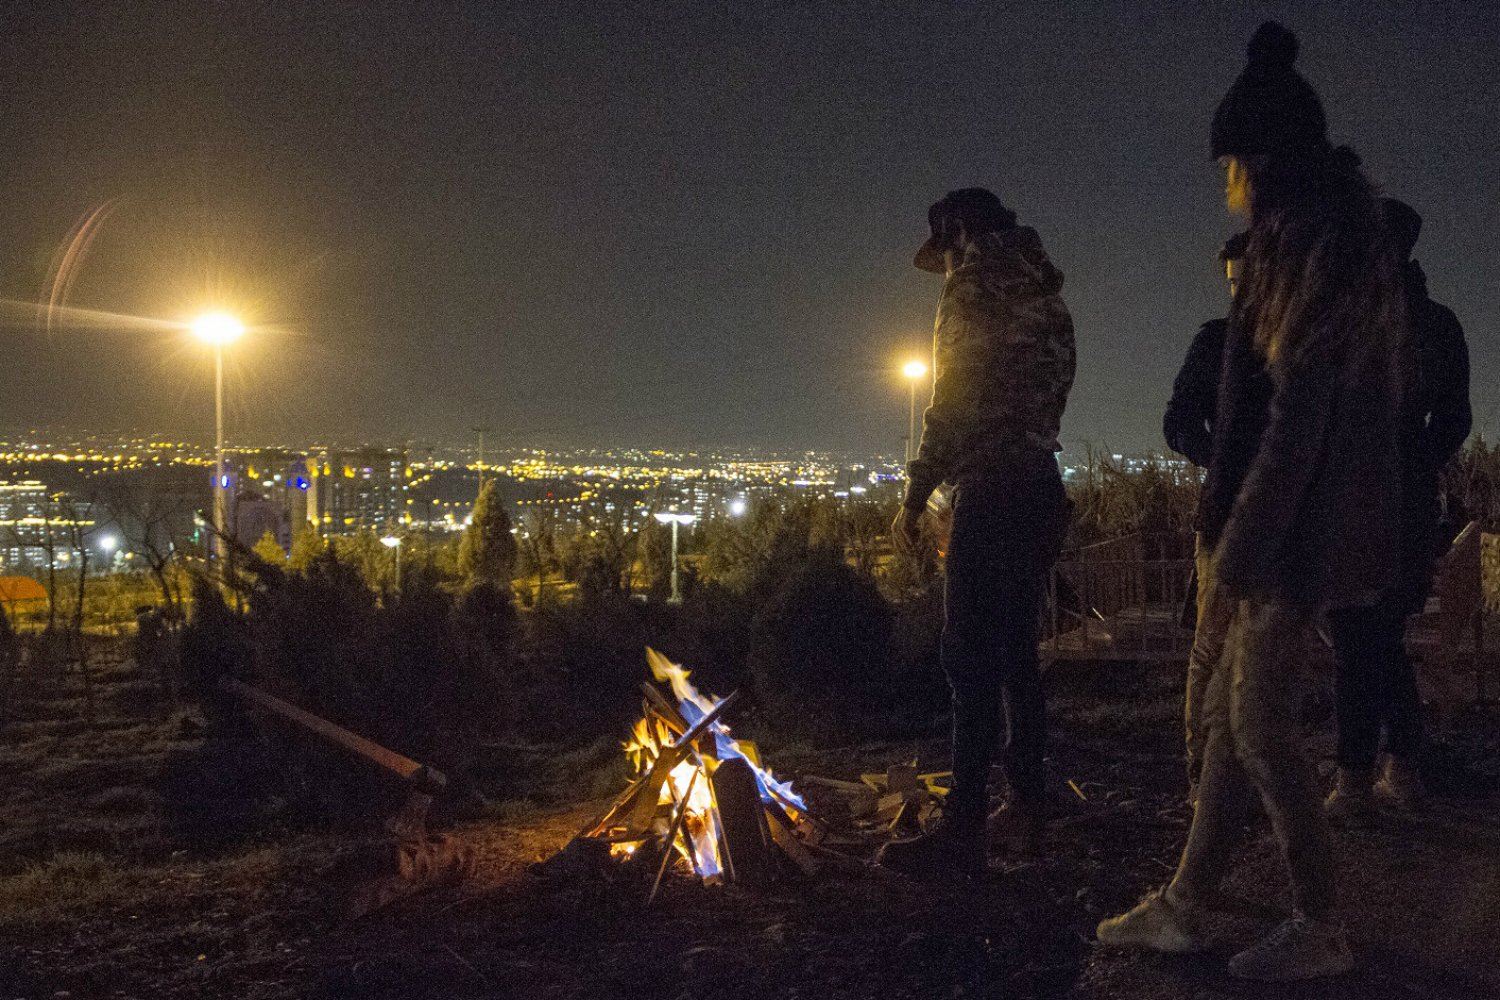 In the north-west in Abshar, at the foot of the mountains, small groups of young men and women hang around campfires near the Tehran Waterfall Park. (MEE)